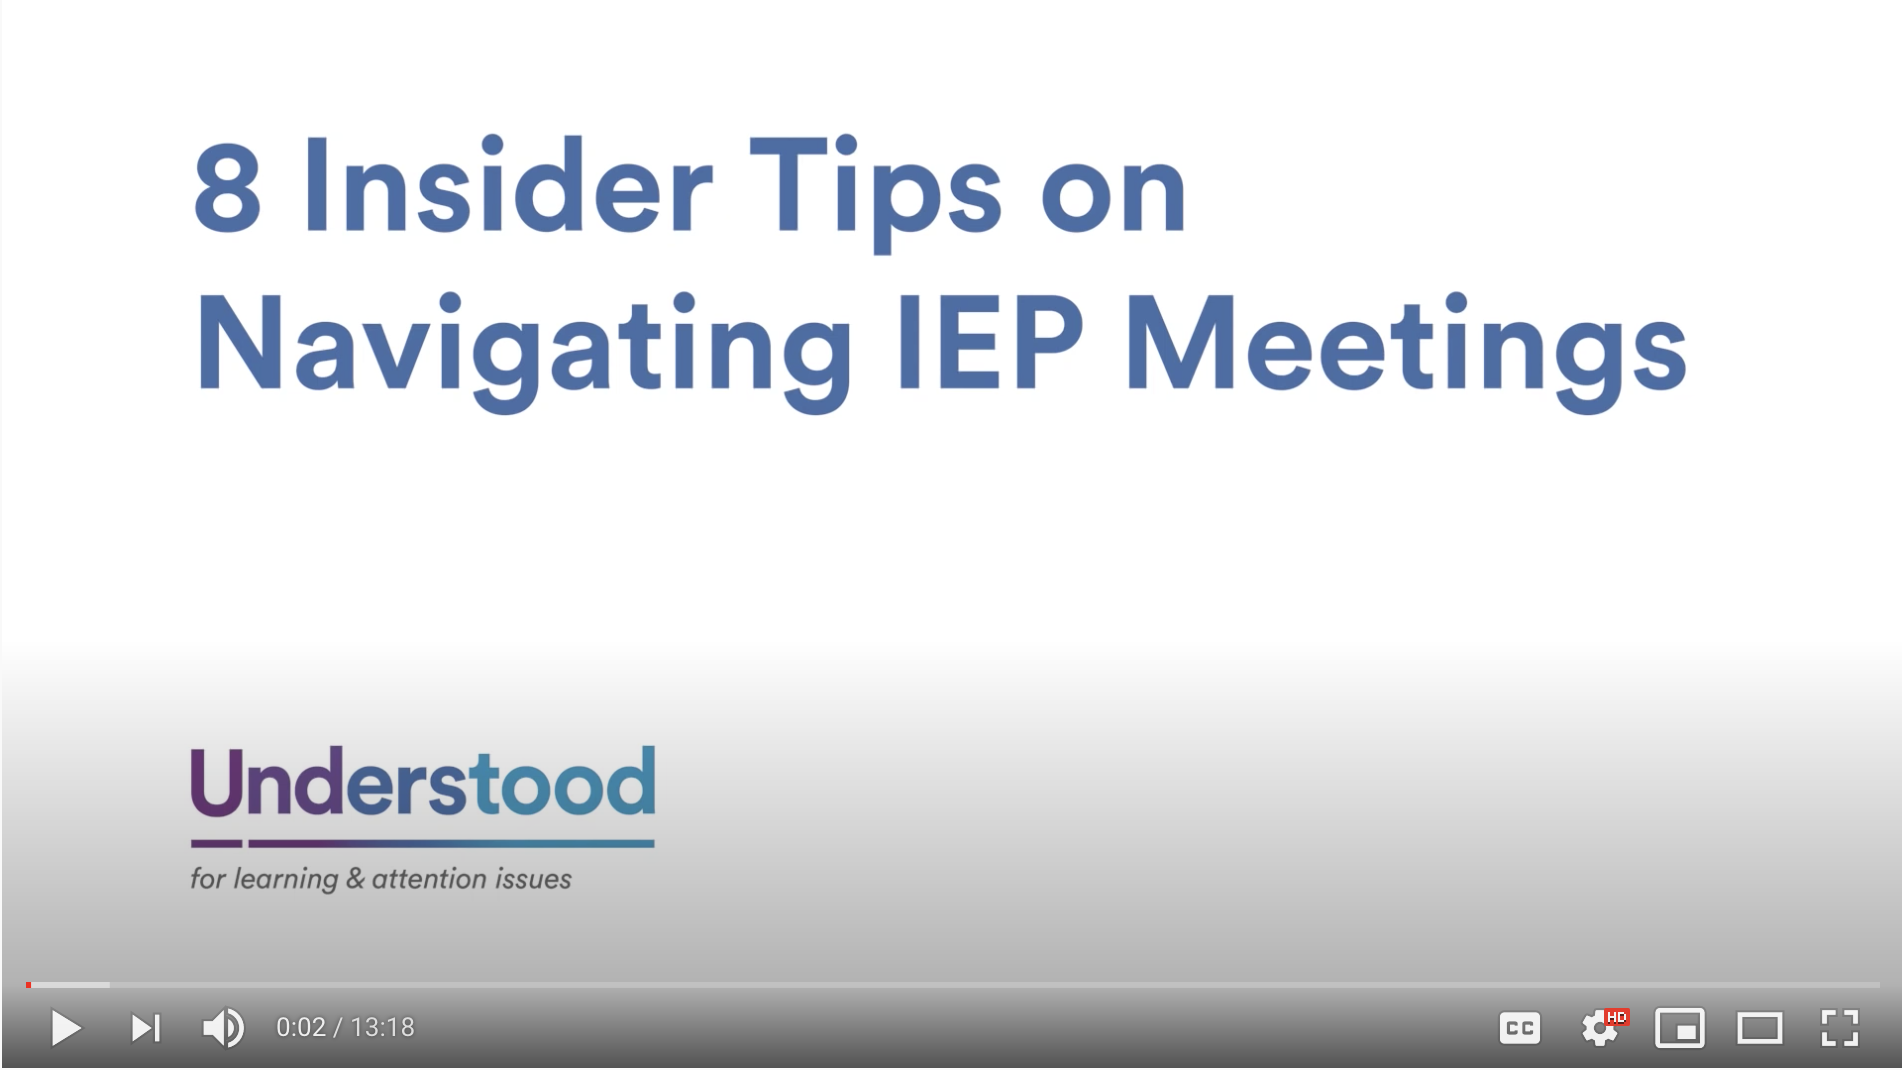 Screenshot for IEP Meeting Tips for Parents: 8 Insider Tips on Navigating an IEP Meeting video.